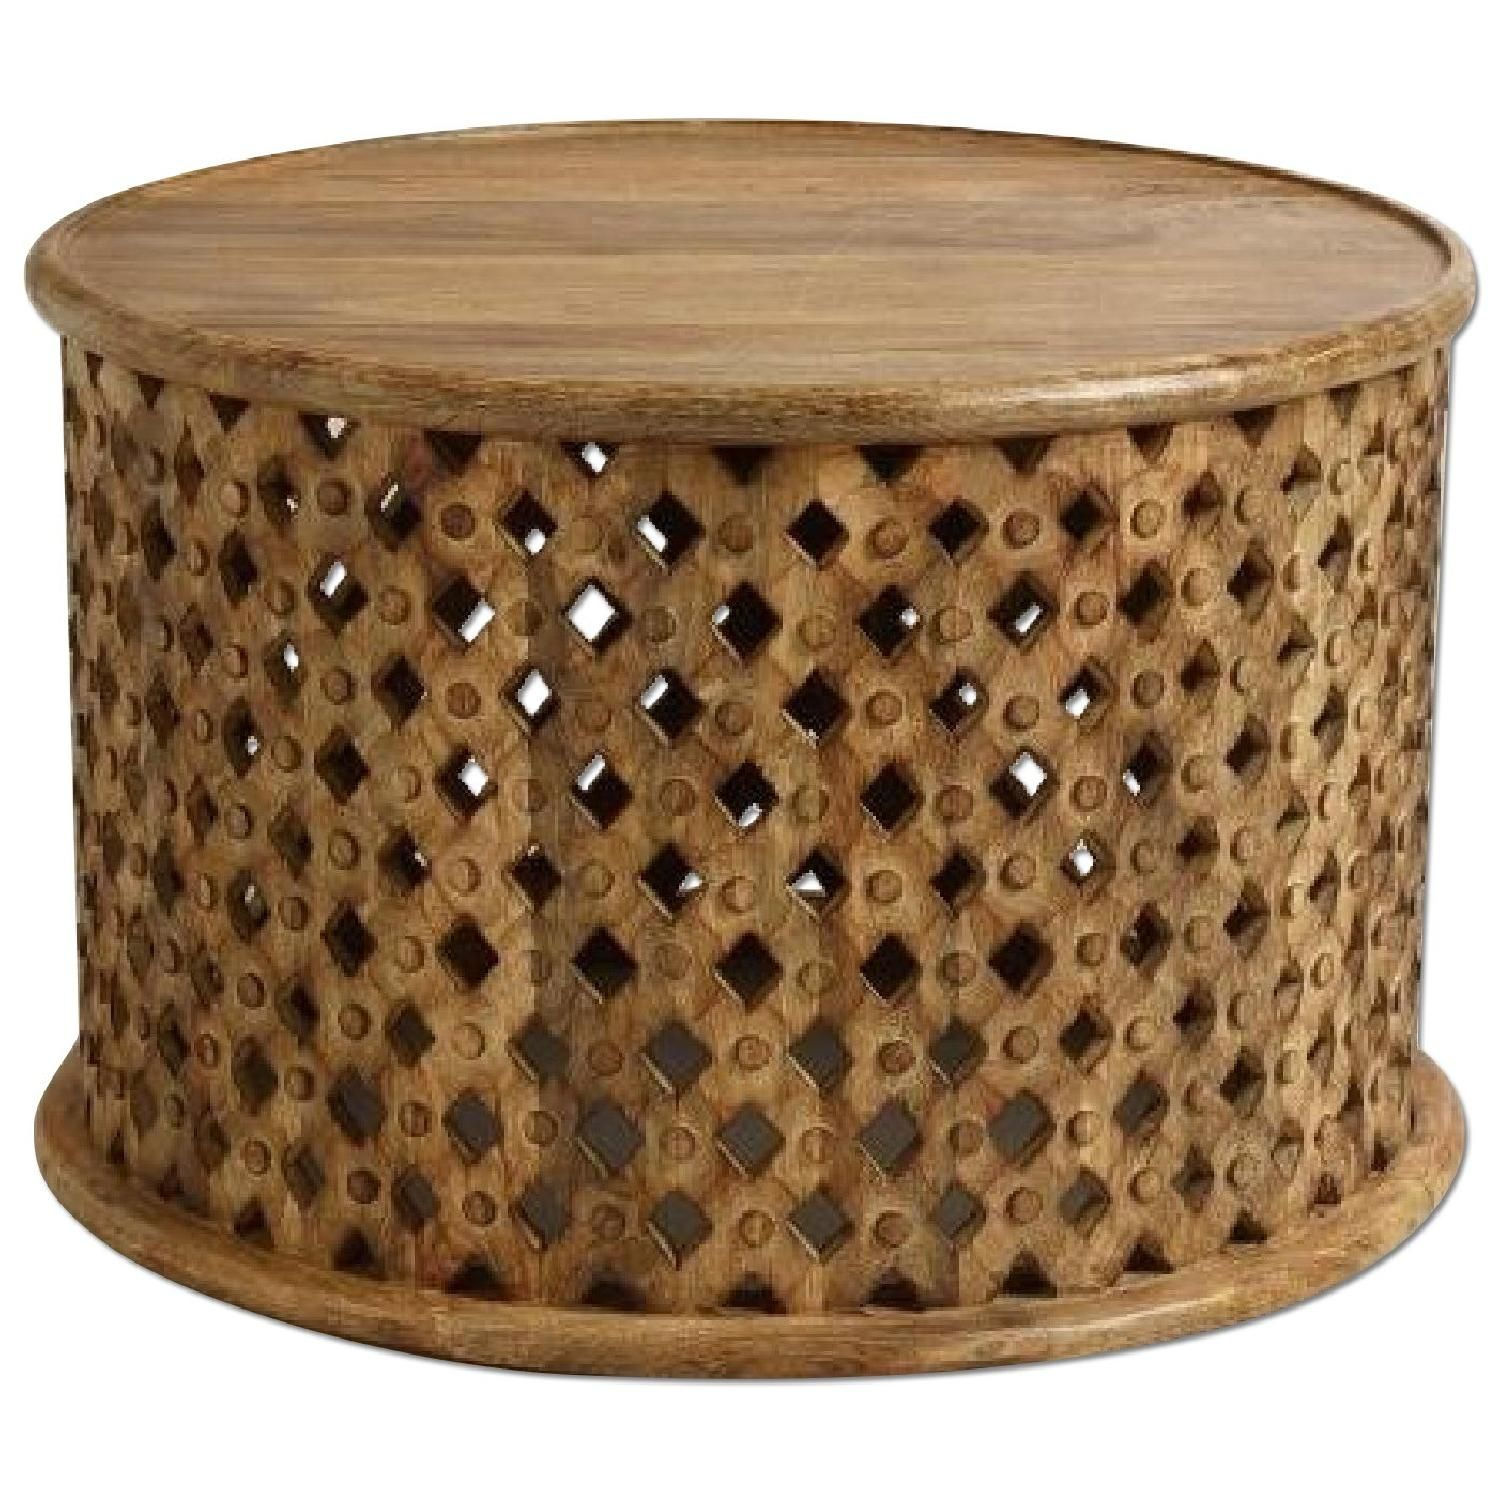 This is a Vintage African Drum Coffee Table for $500 00